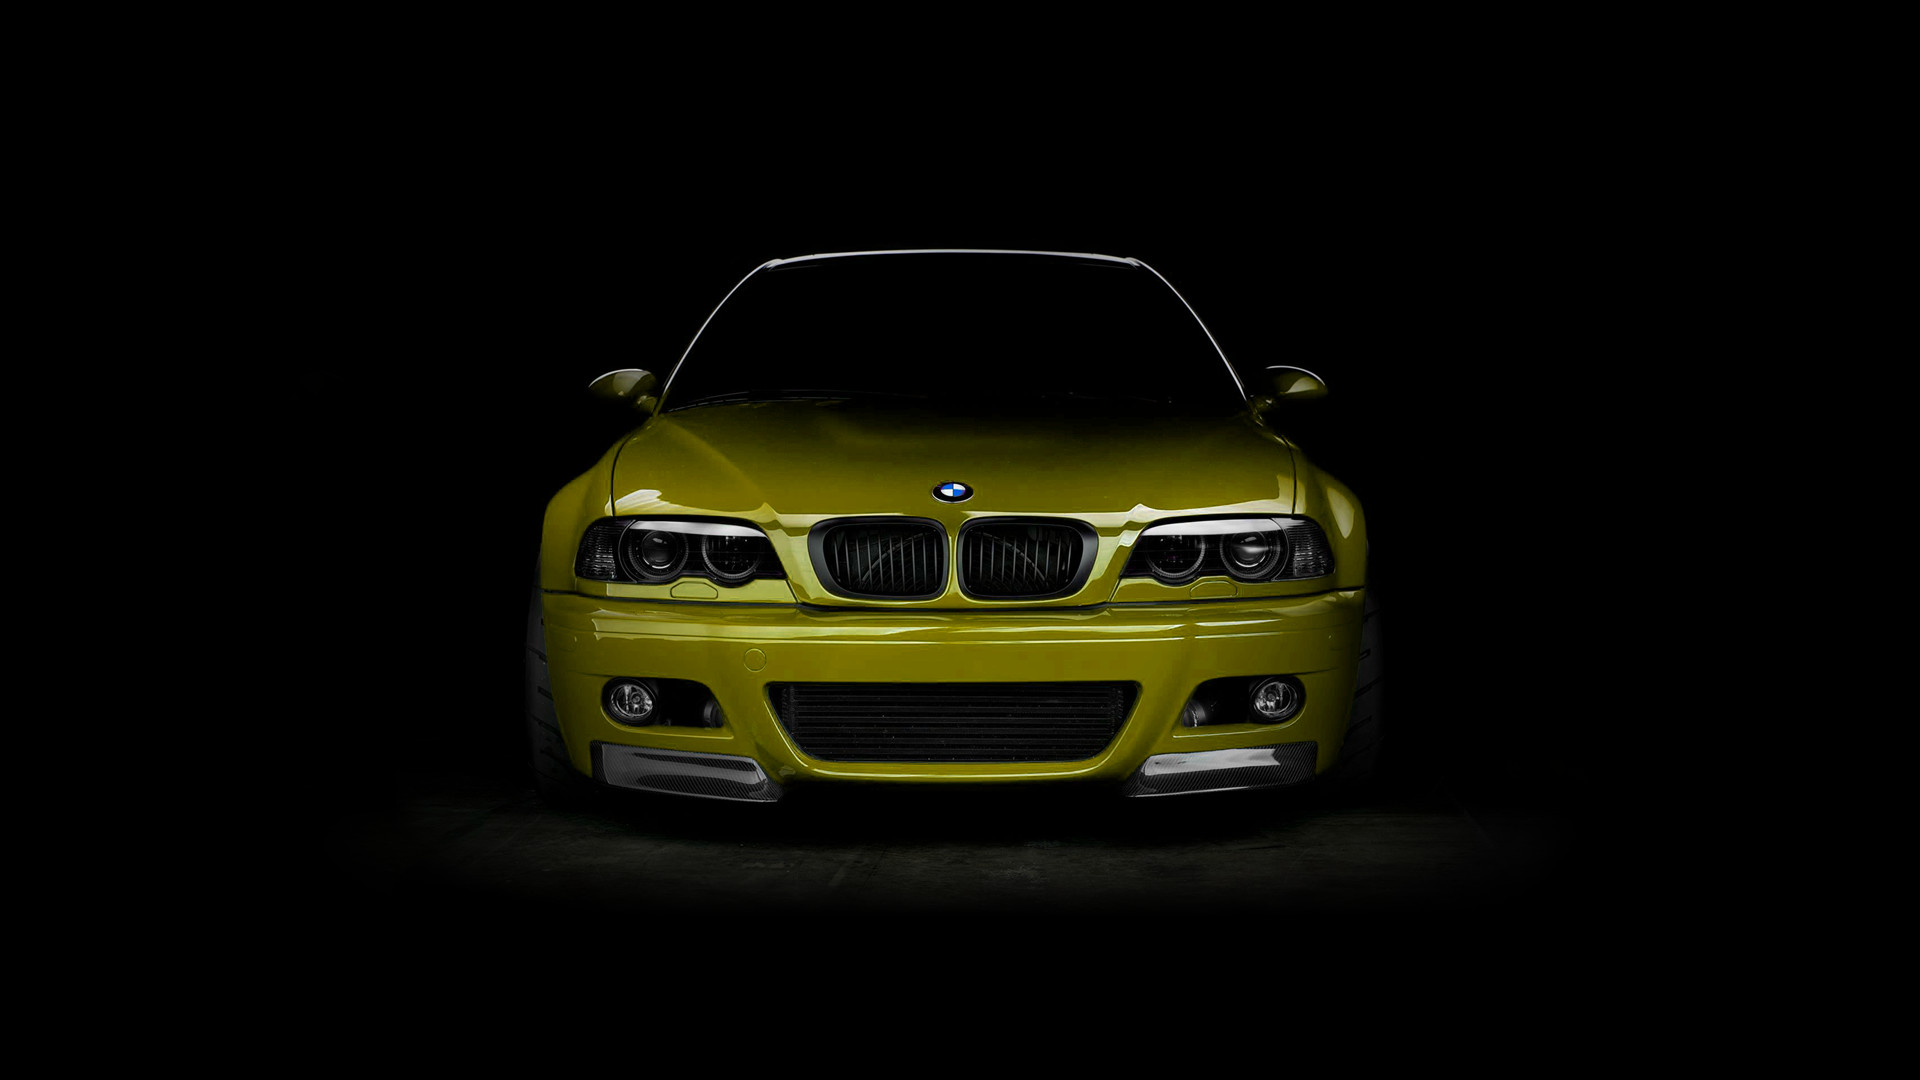 1920x1080 1191x670 BMW E46 M3 by samvesters on DeviantArt